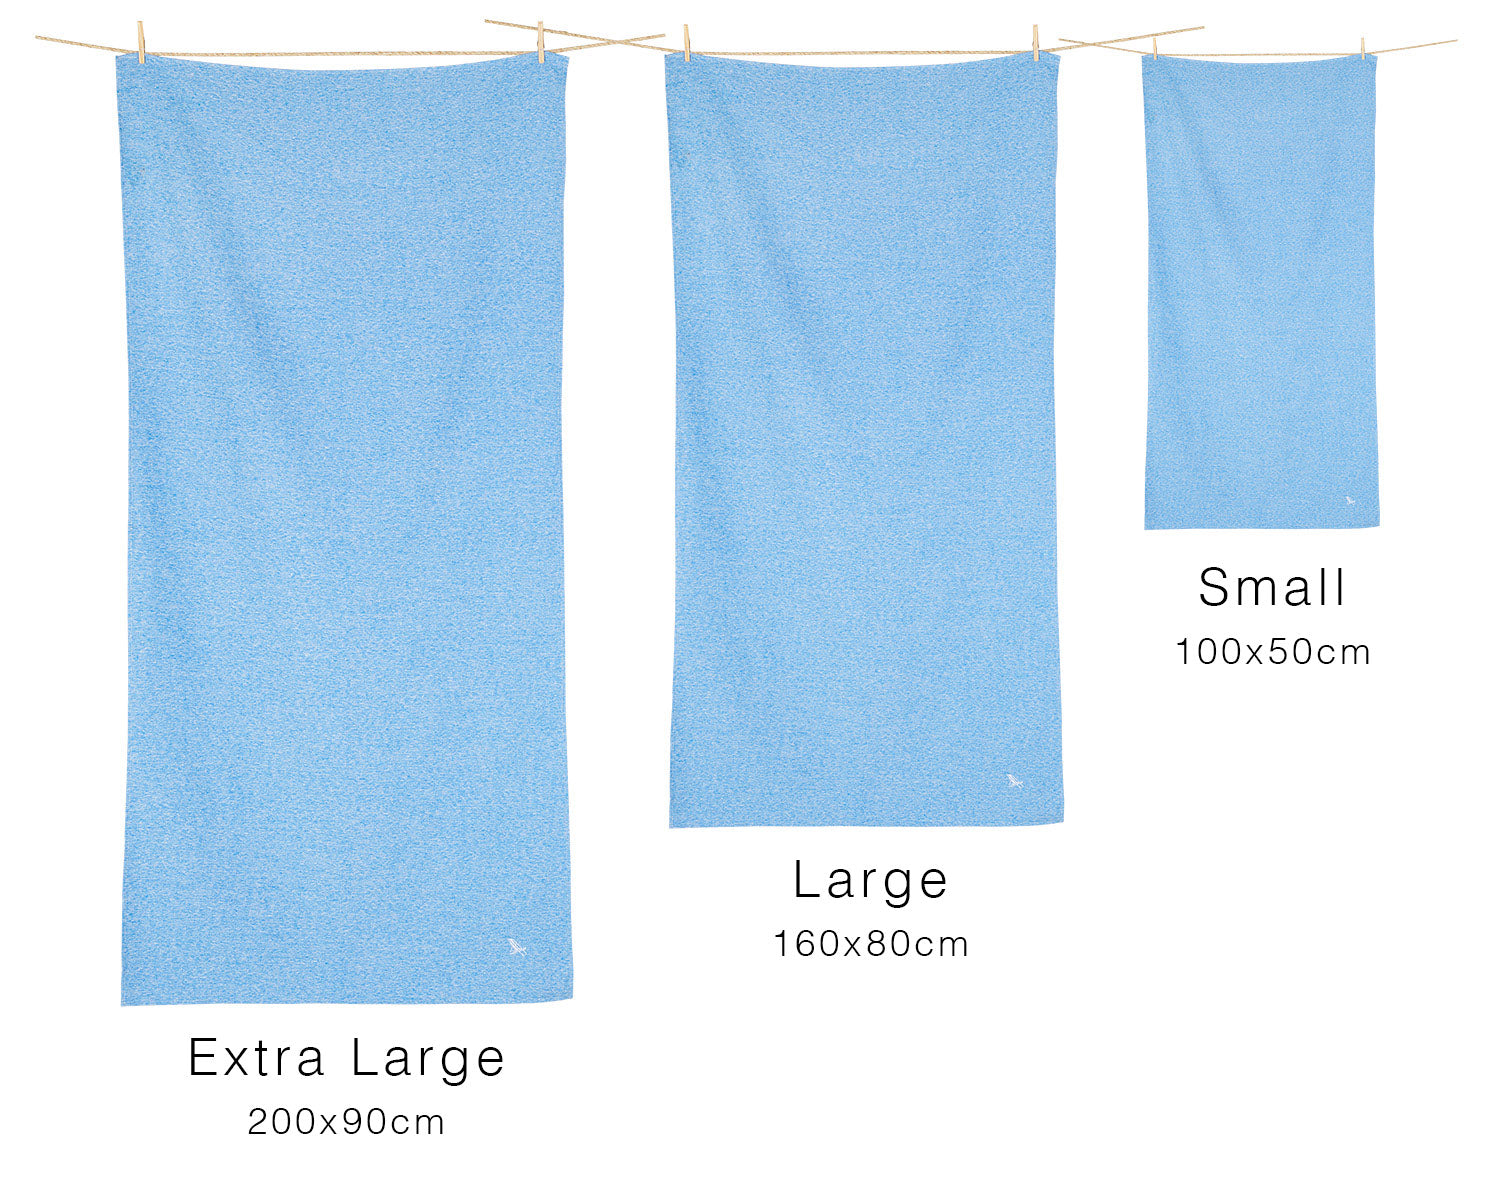 Sizes and dimensions of Dock & Bay towels